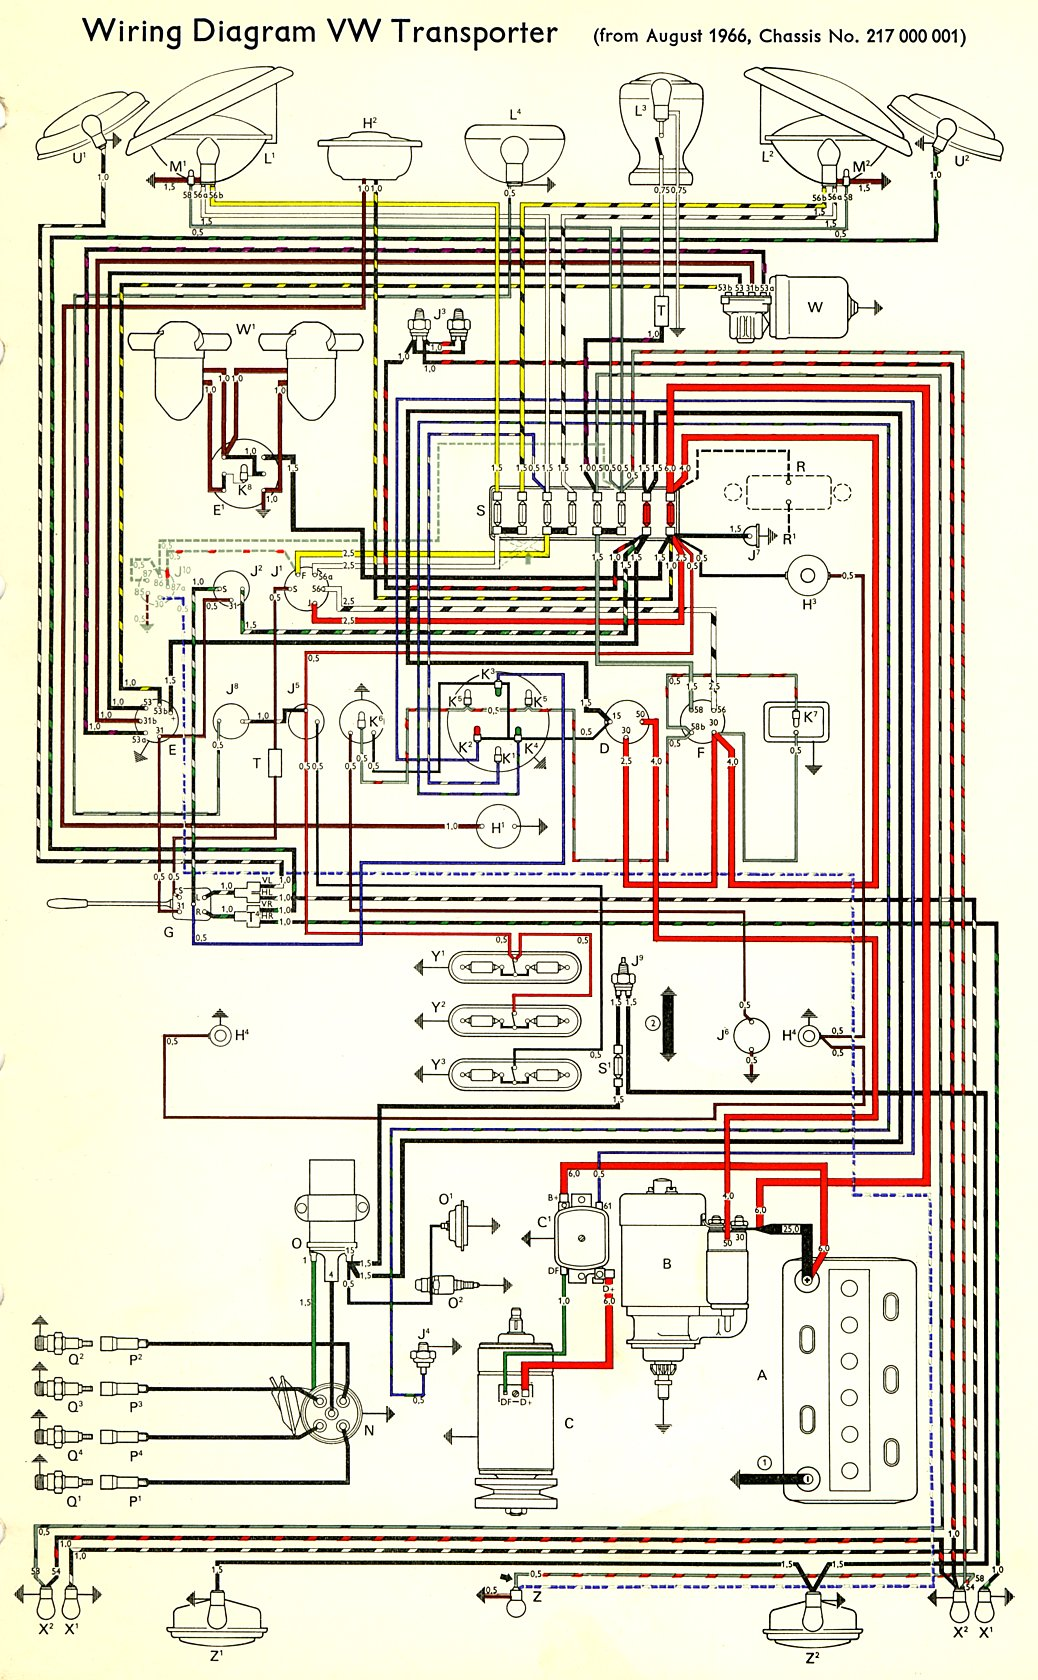 bus_67 1967 bus wiring diagram thegoldenbug com vw bus wire harness at gsmx.co